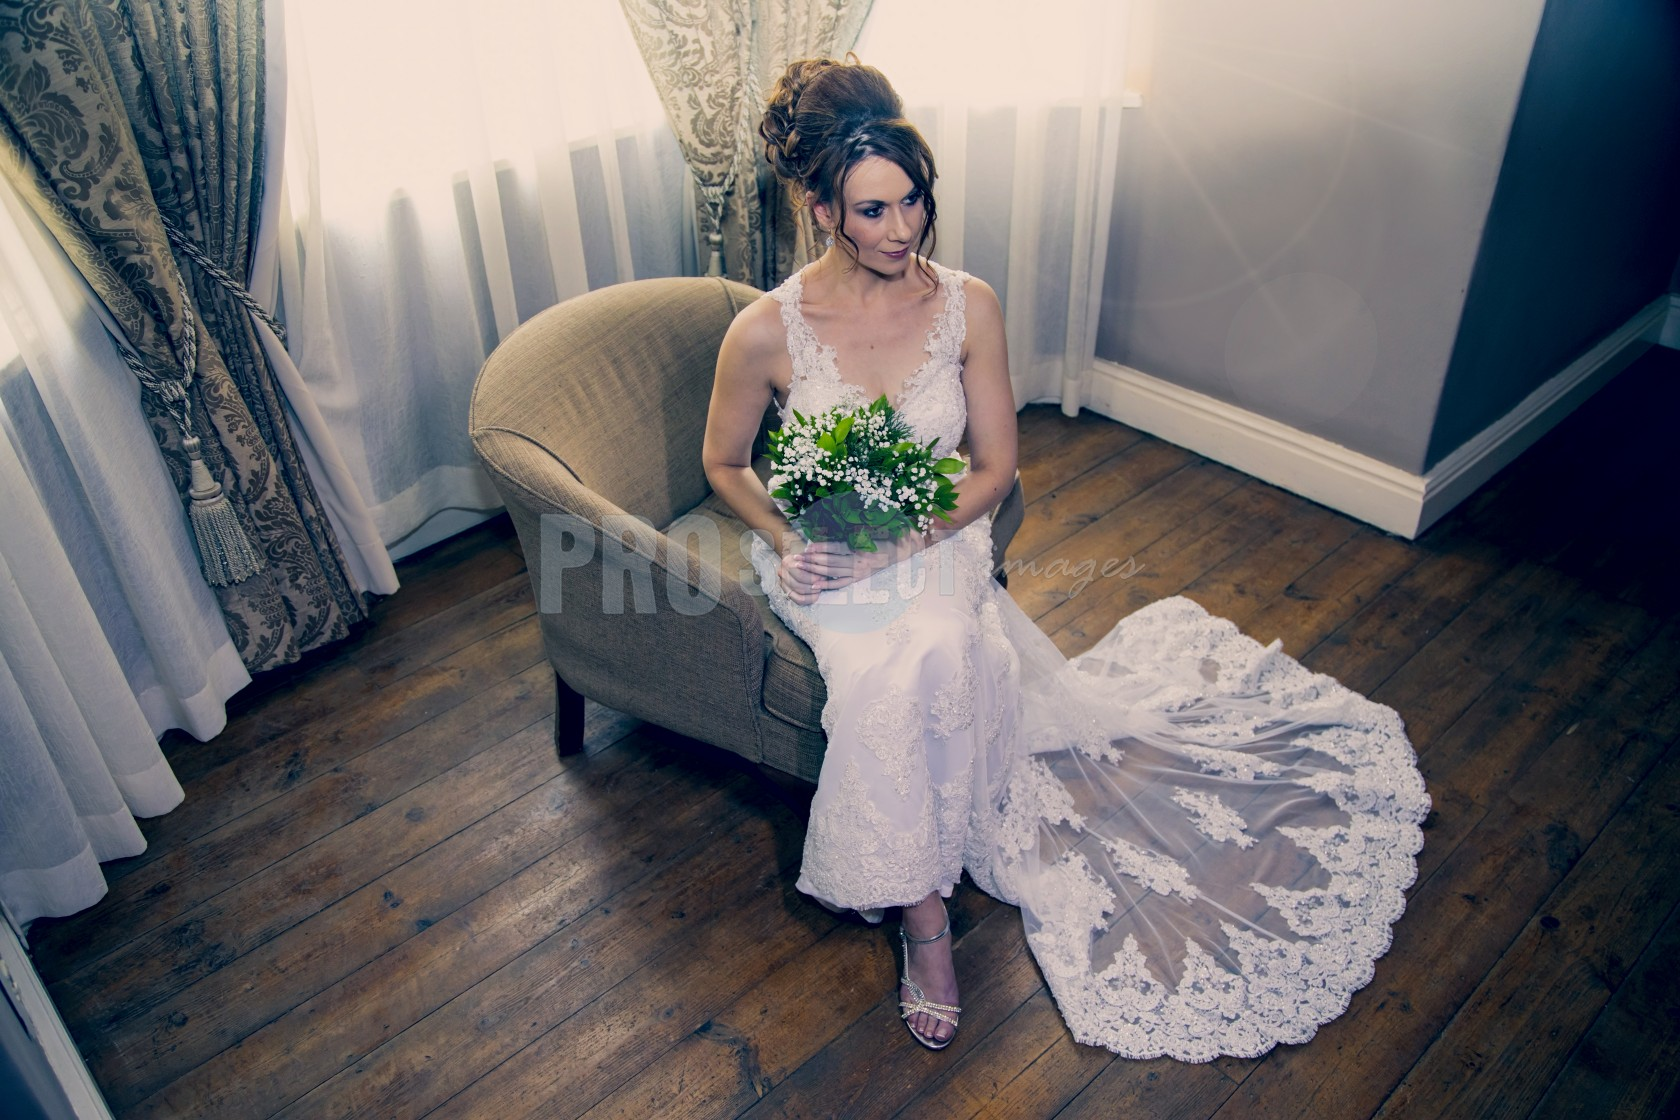 Bride sitting on chair | ProSelect-images